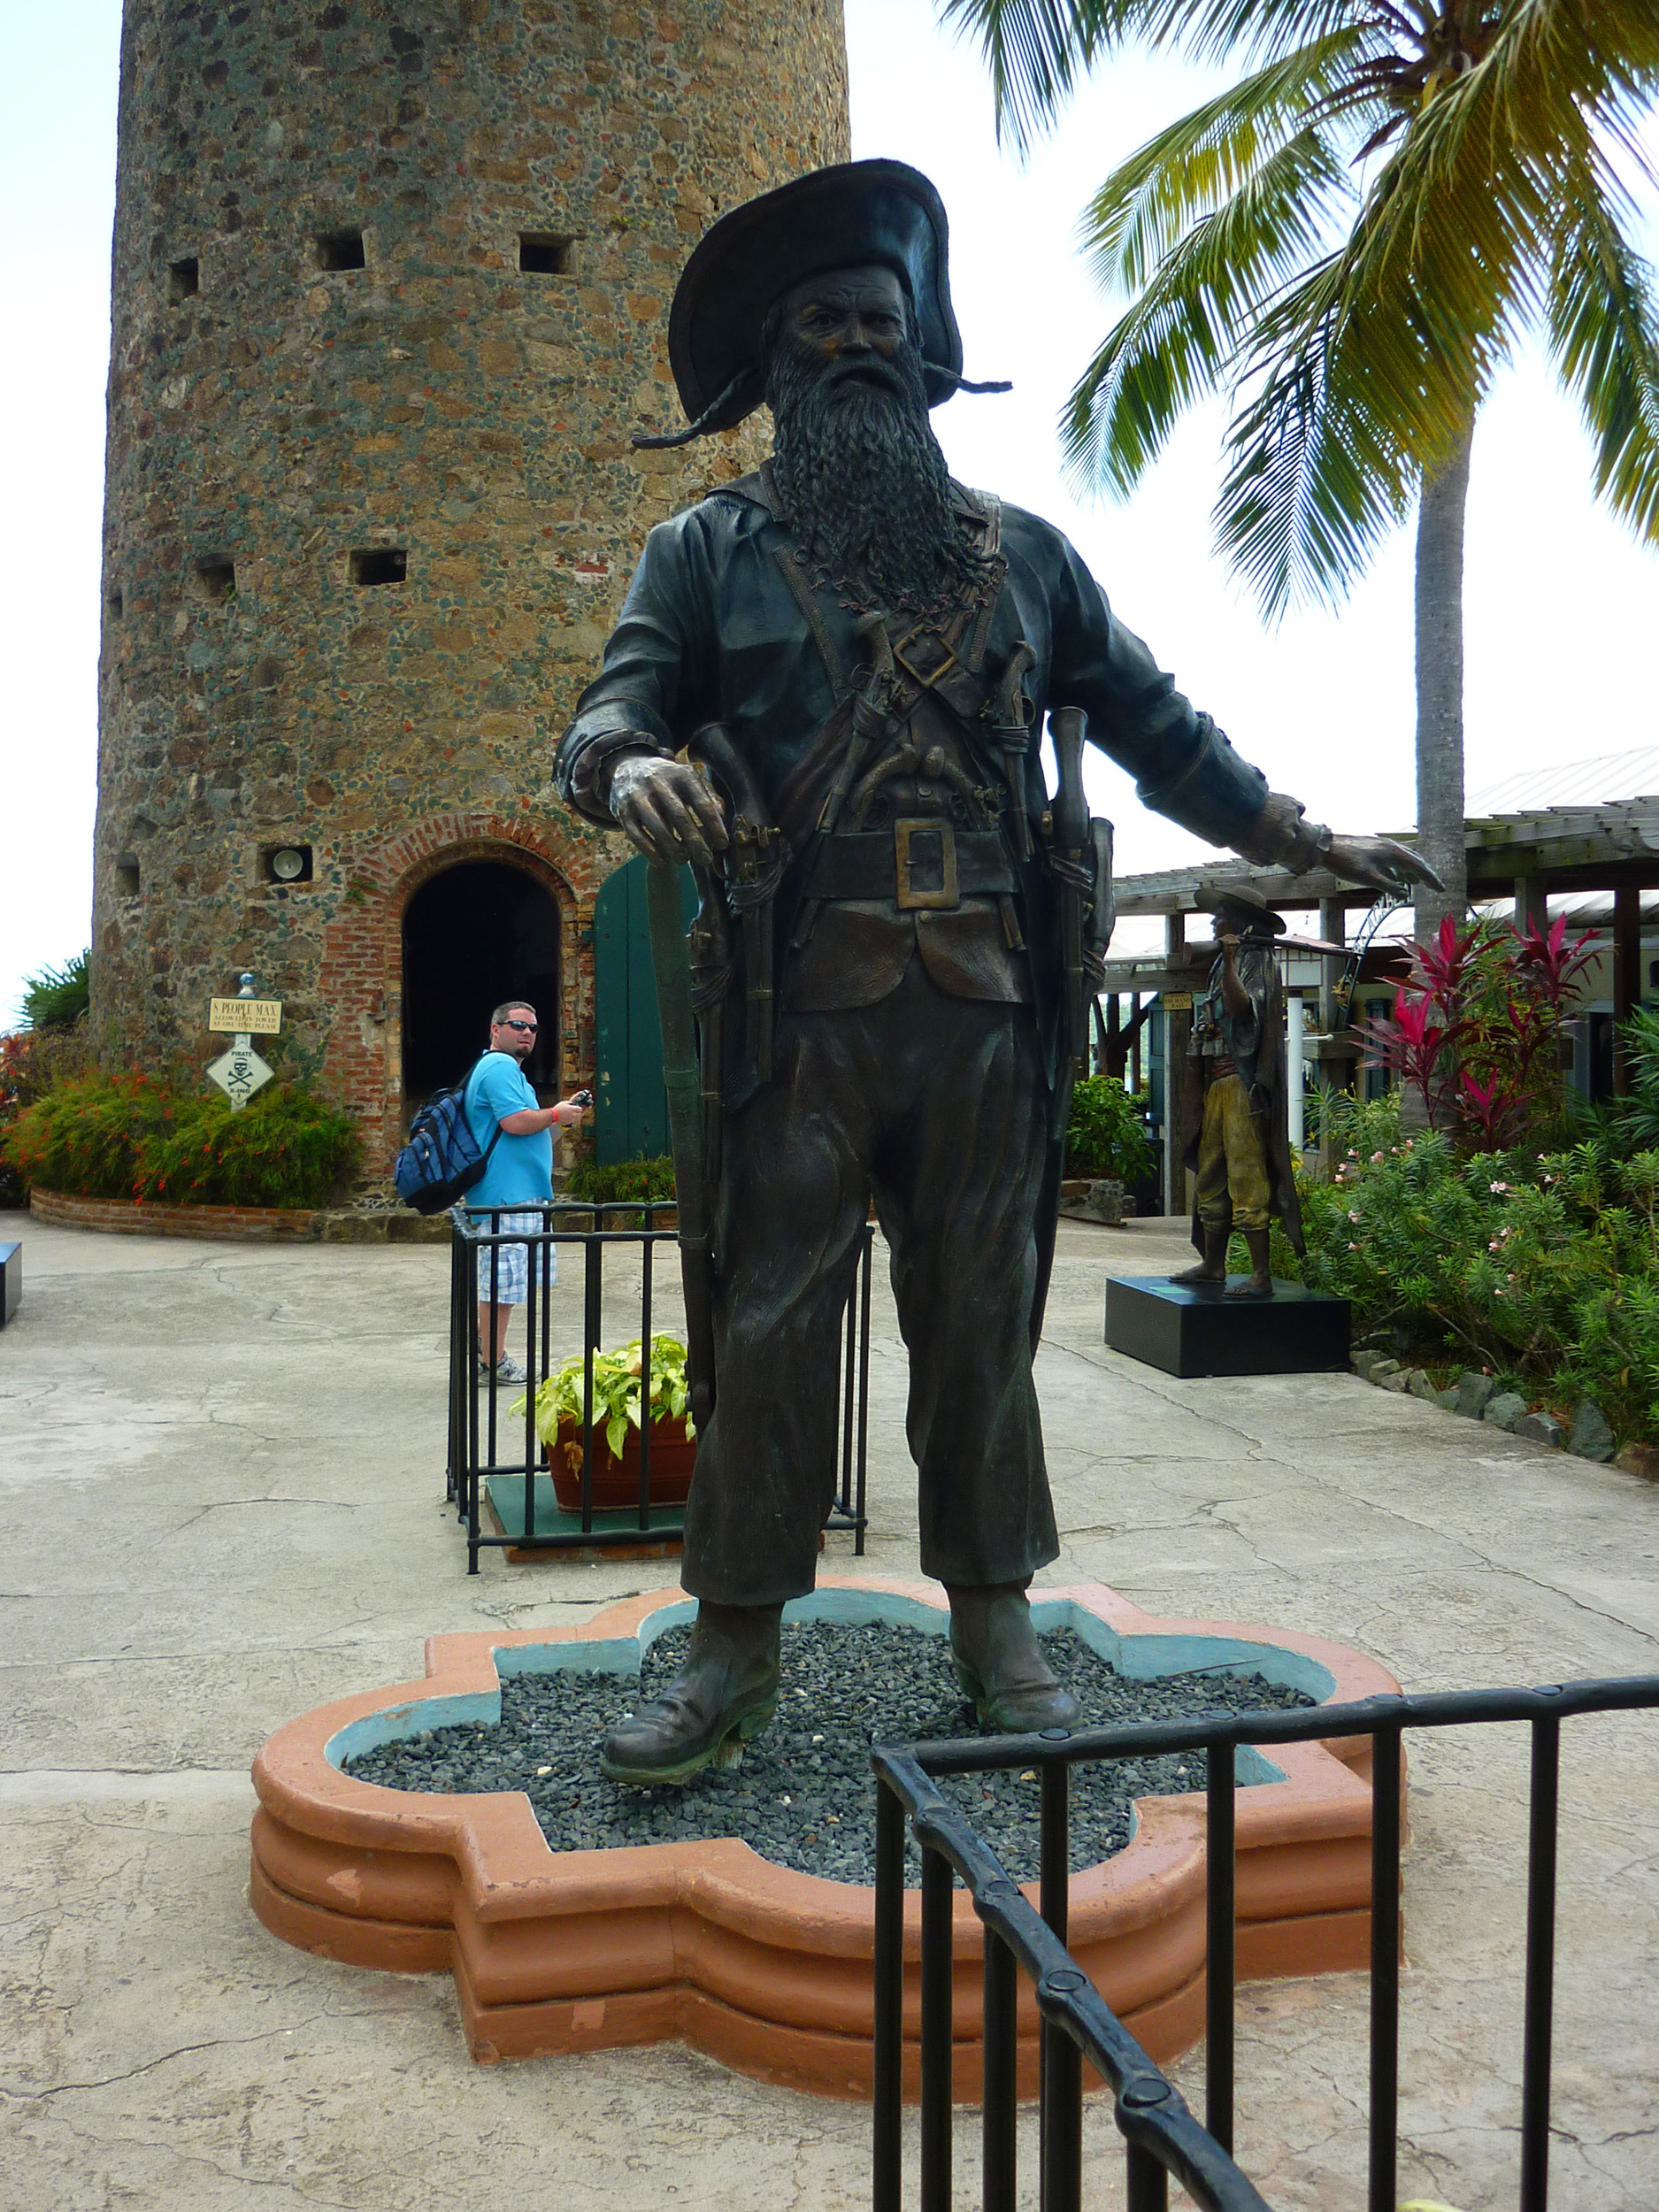 a statue of pirate blackbeard and his castle tower to the rear, St. Thomas, US virgin islands